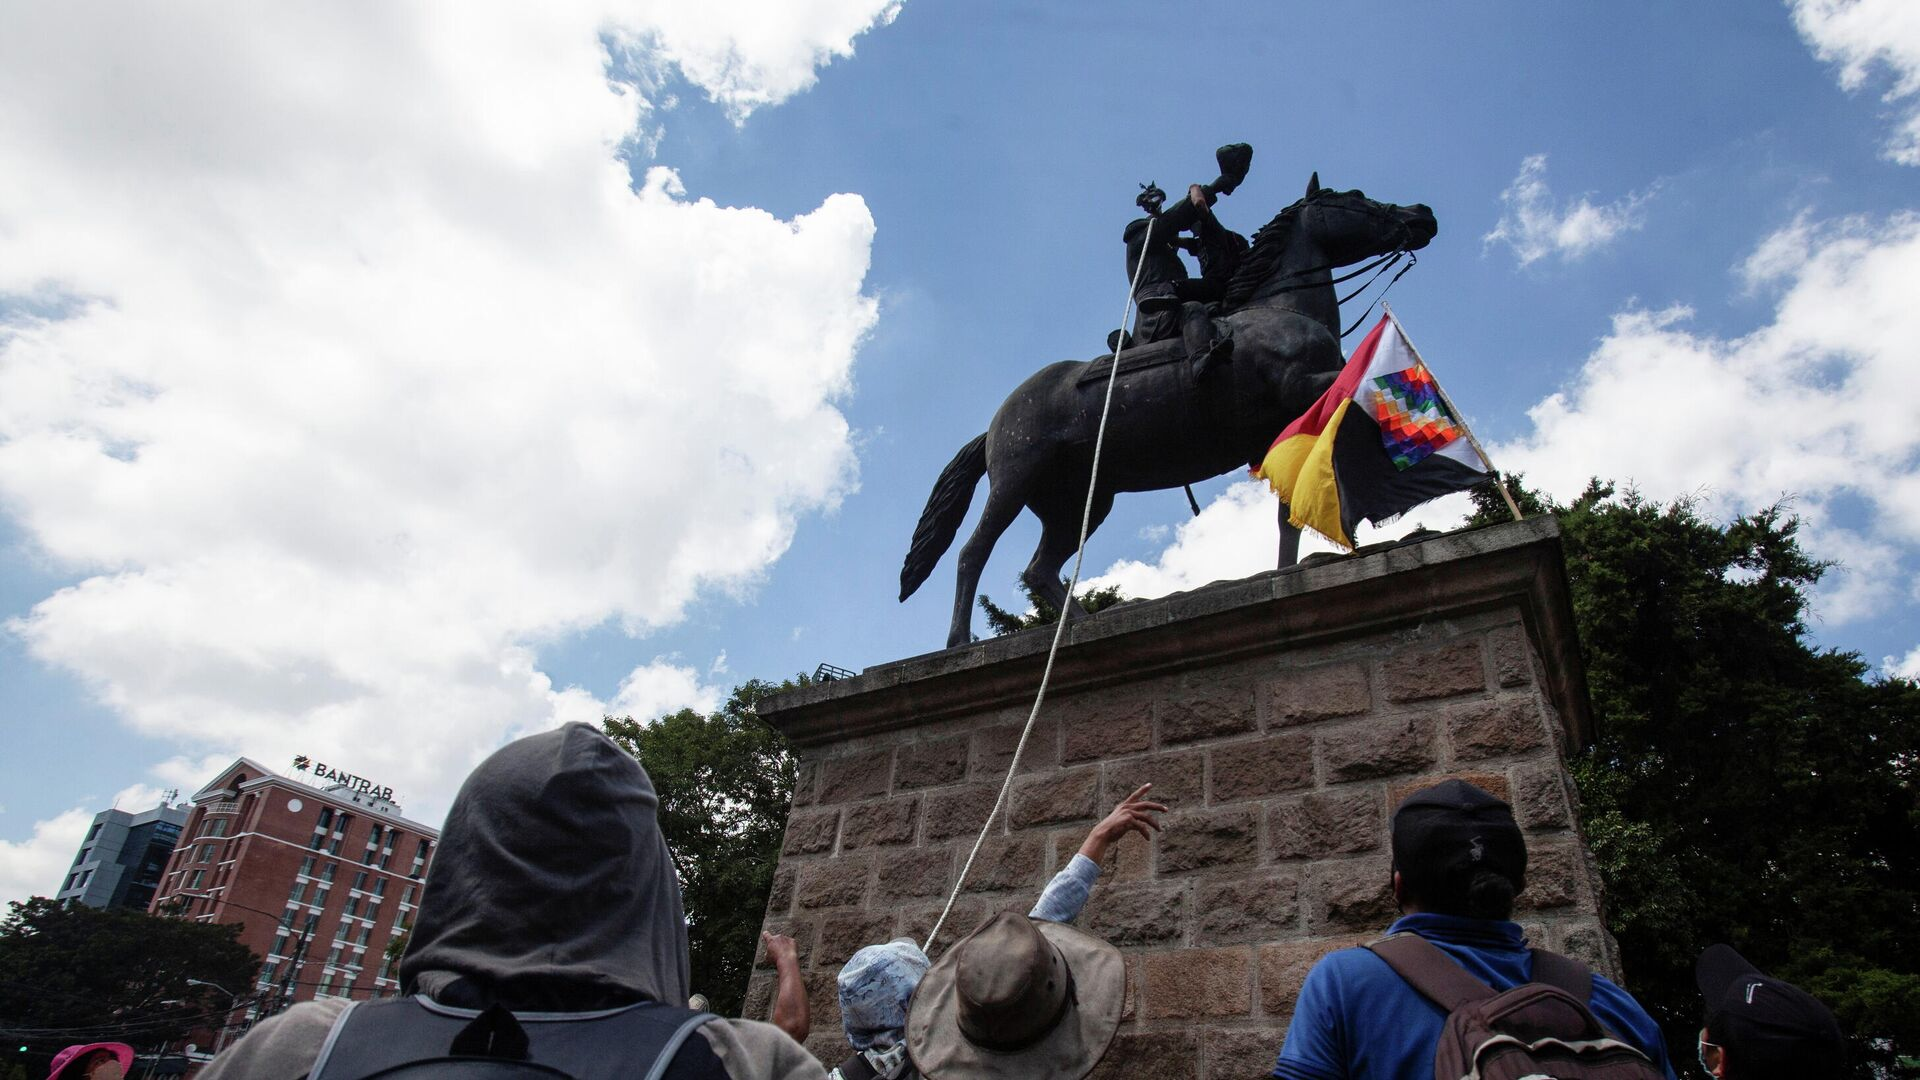 Demonstrators attempt to topple the statue of former President Jose Maria Reina Barrios during protests against the treatment of indigenous people by European conquerors, during Hispanic Heritage Day, in Guatemala City, Guatemala, October 12, 2021 - Sputnik International, 1920, 13.10.2021